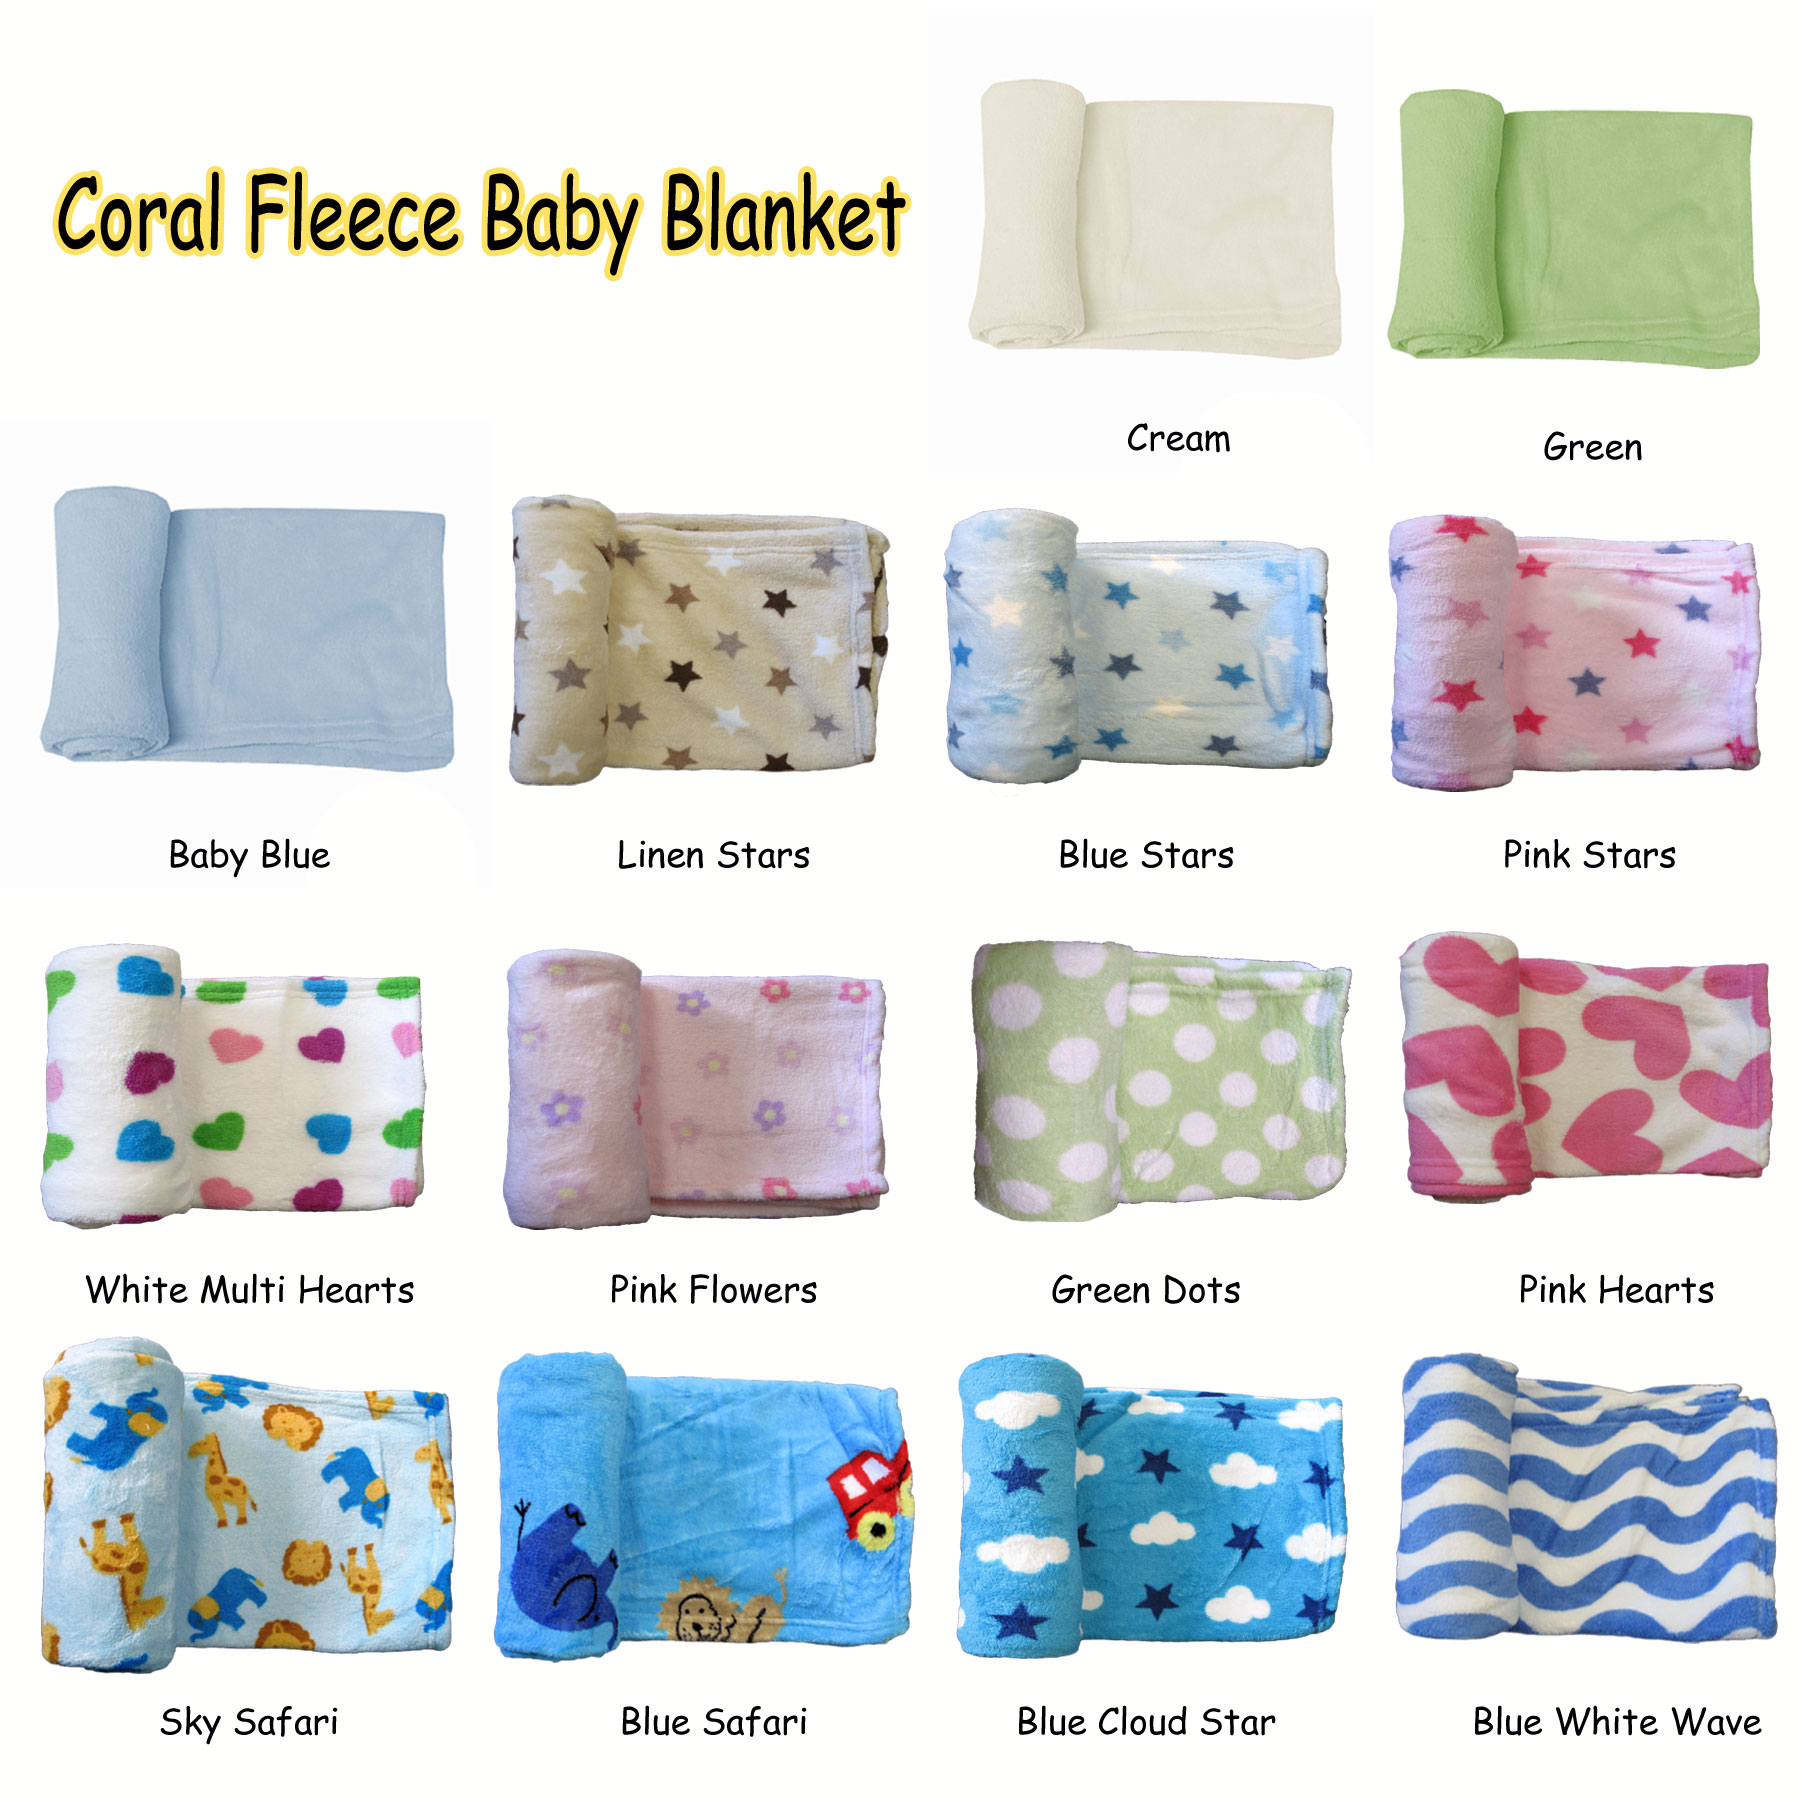 Details About Ultra Soft Baby C Fleece Throw Rug Blanket Animal Stars Hearts Wave Plain